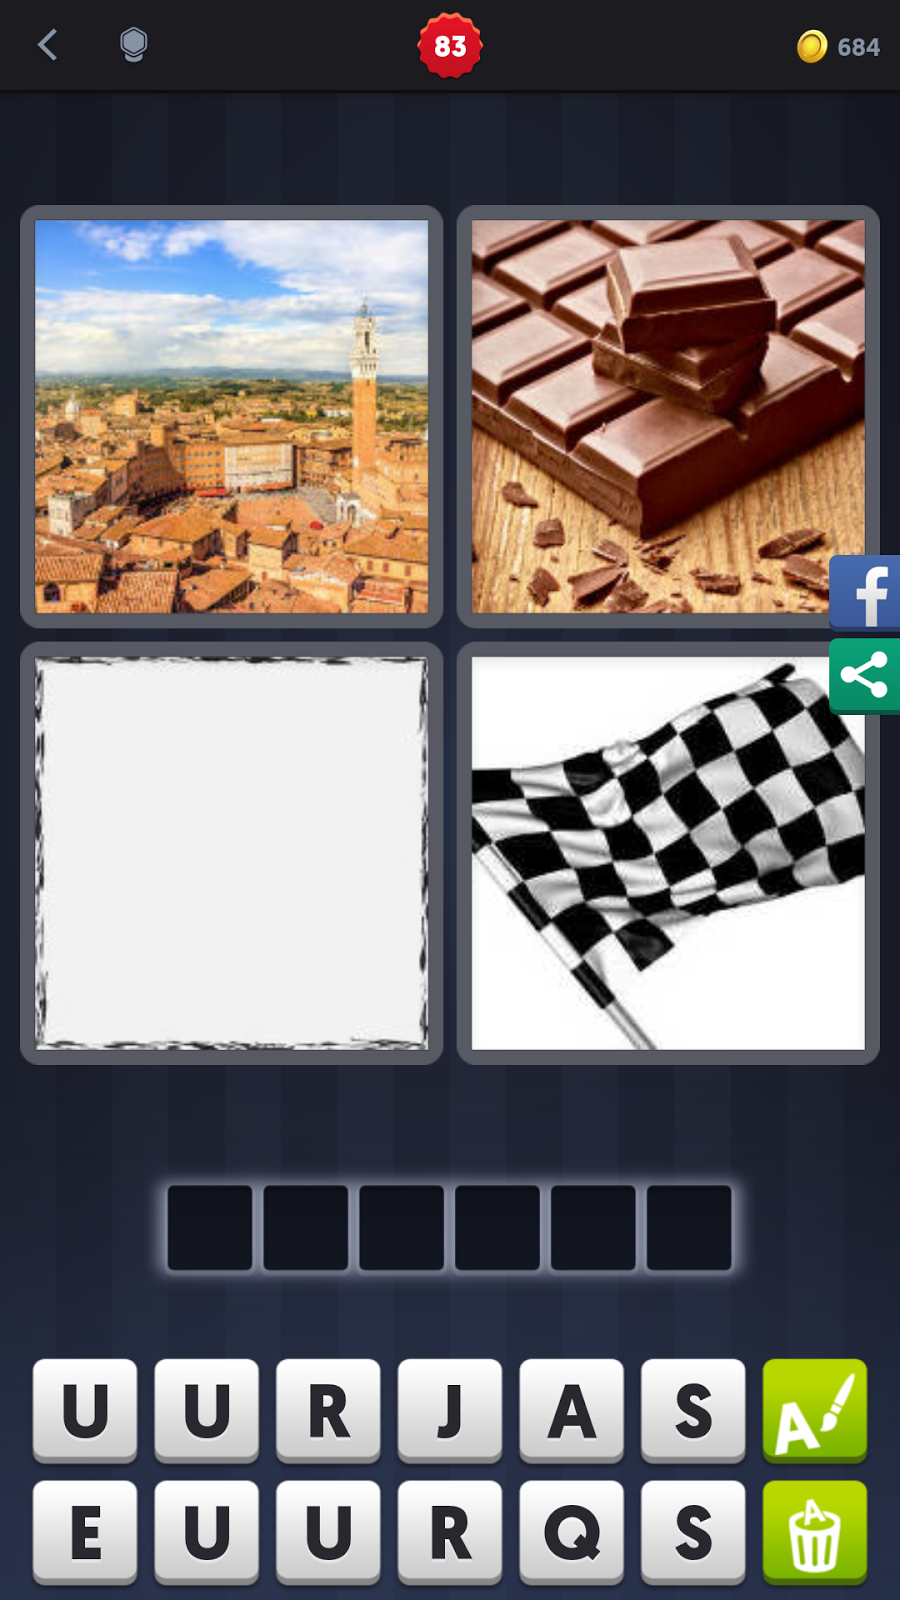 4pics1word answers 8 letters daily challenge 4 pics 1 word answers solutions level 83 square 16182